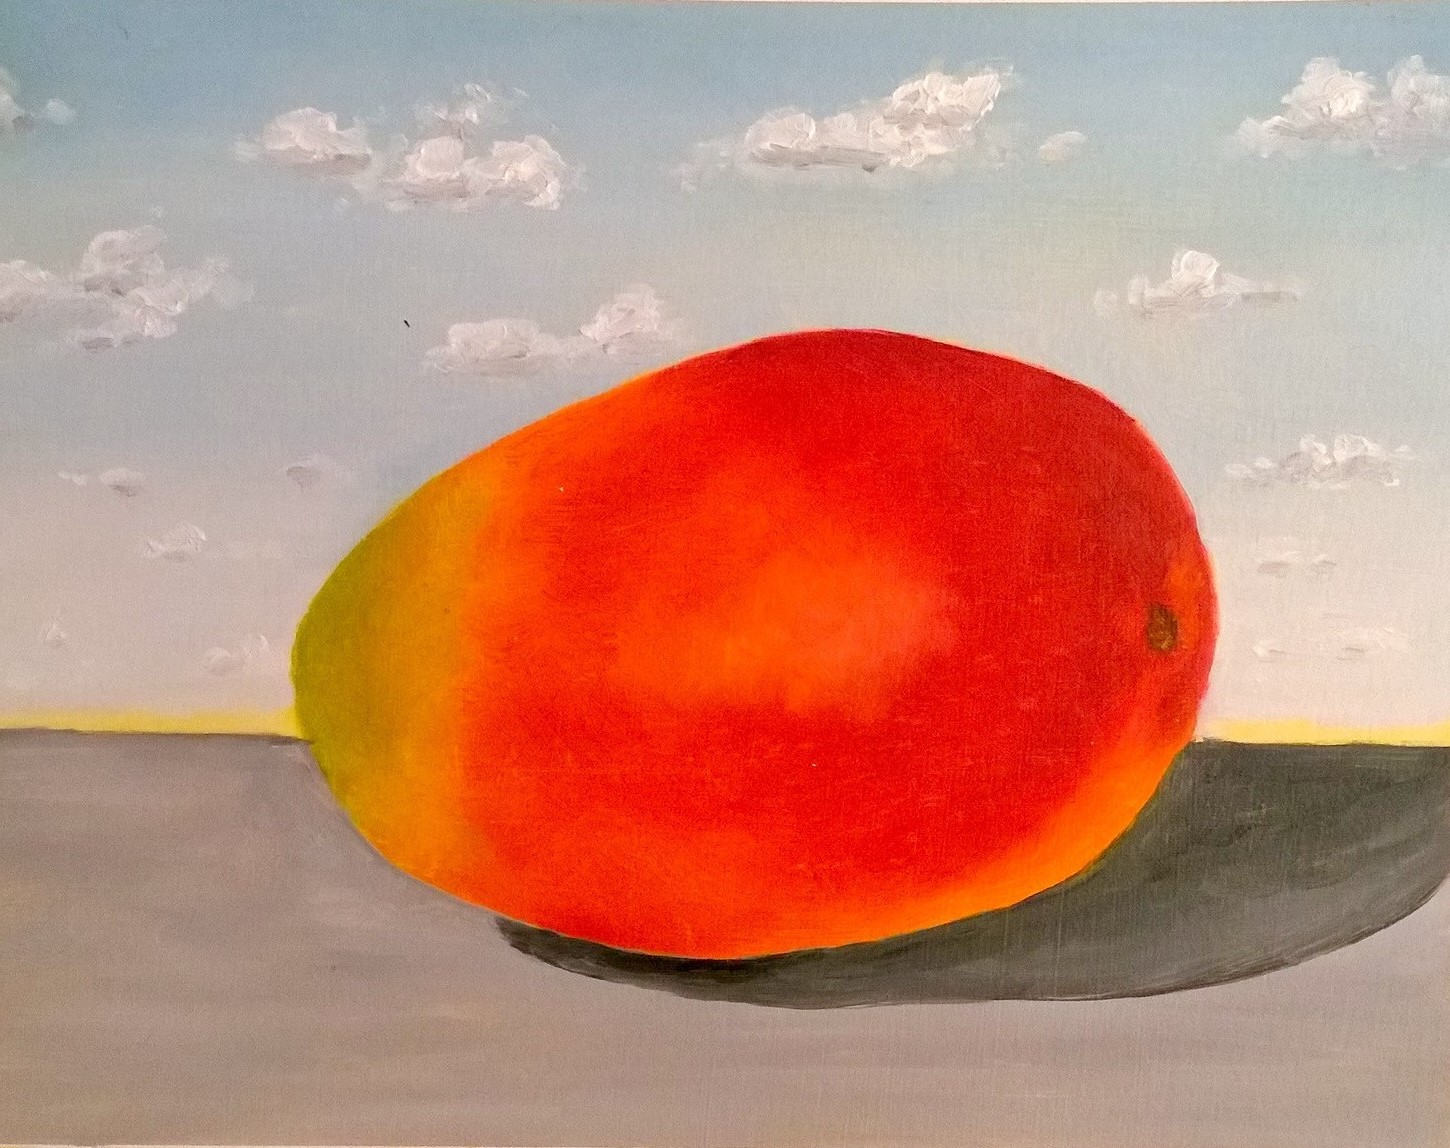 Mango with Clouds